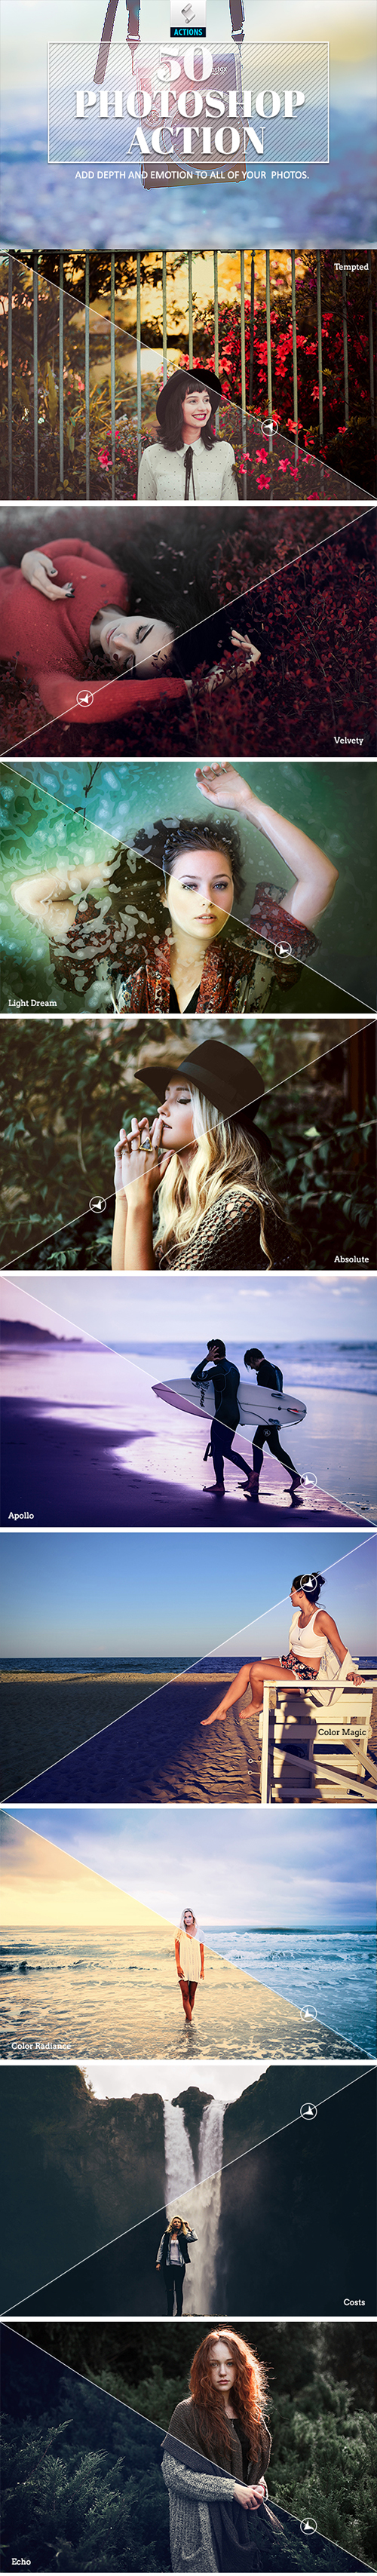 GraphicRiver - 50 Photoshop Actions 18297650